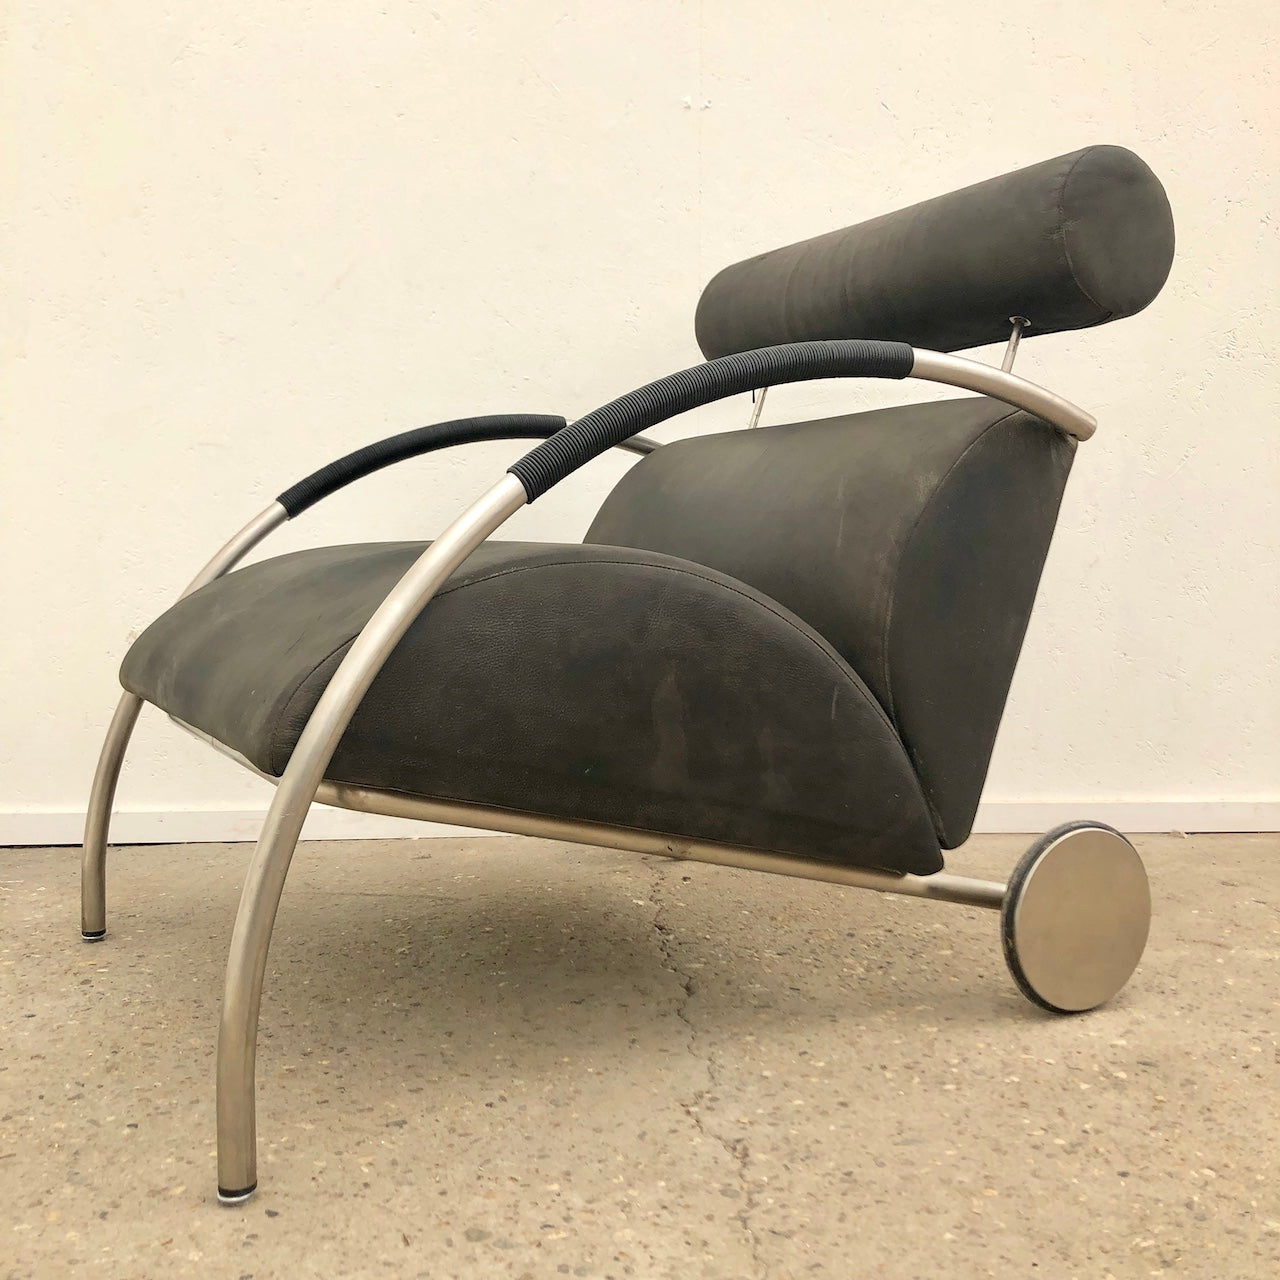 Zyklus Chair by Peter Maly for COR, 1980s